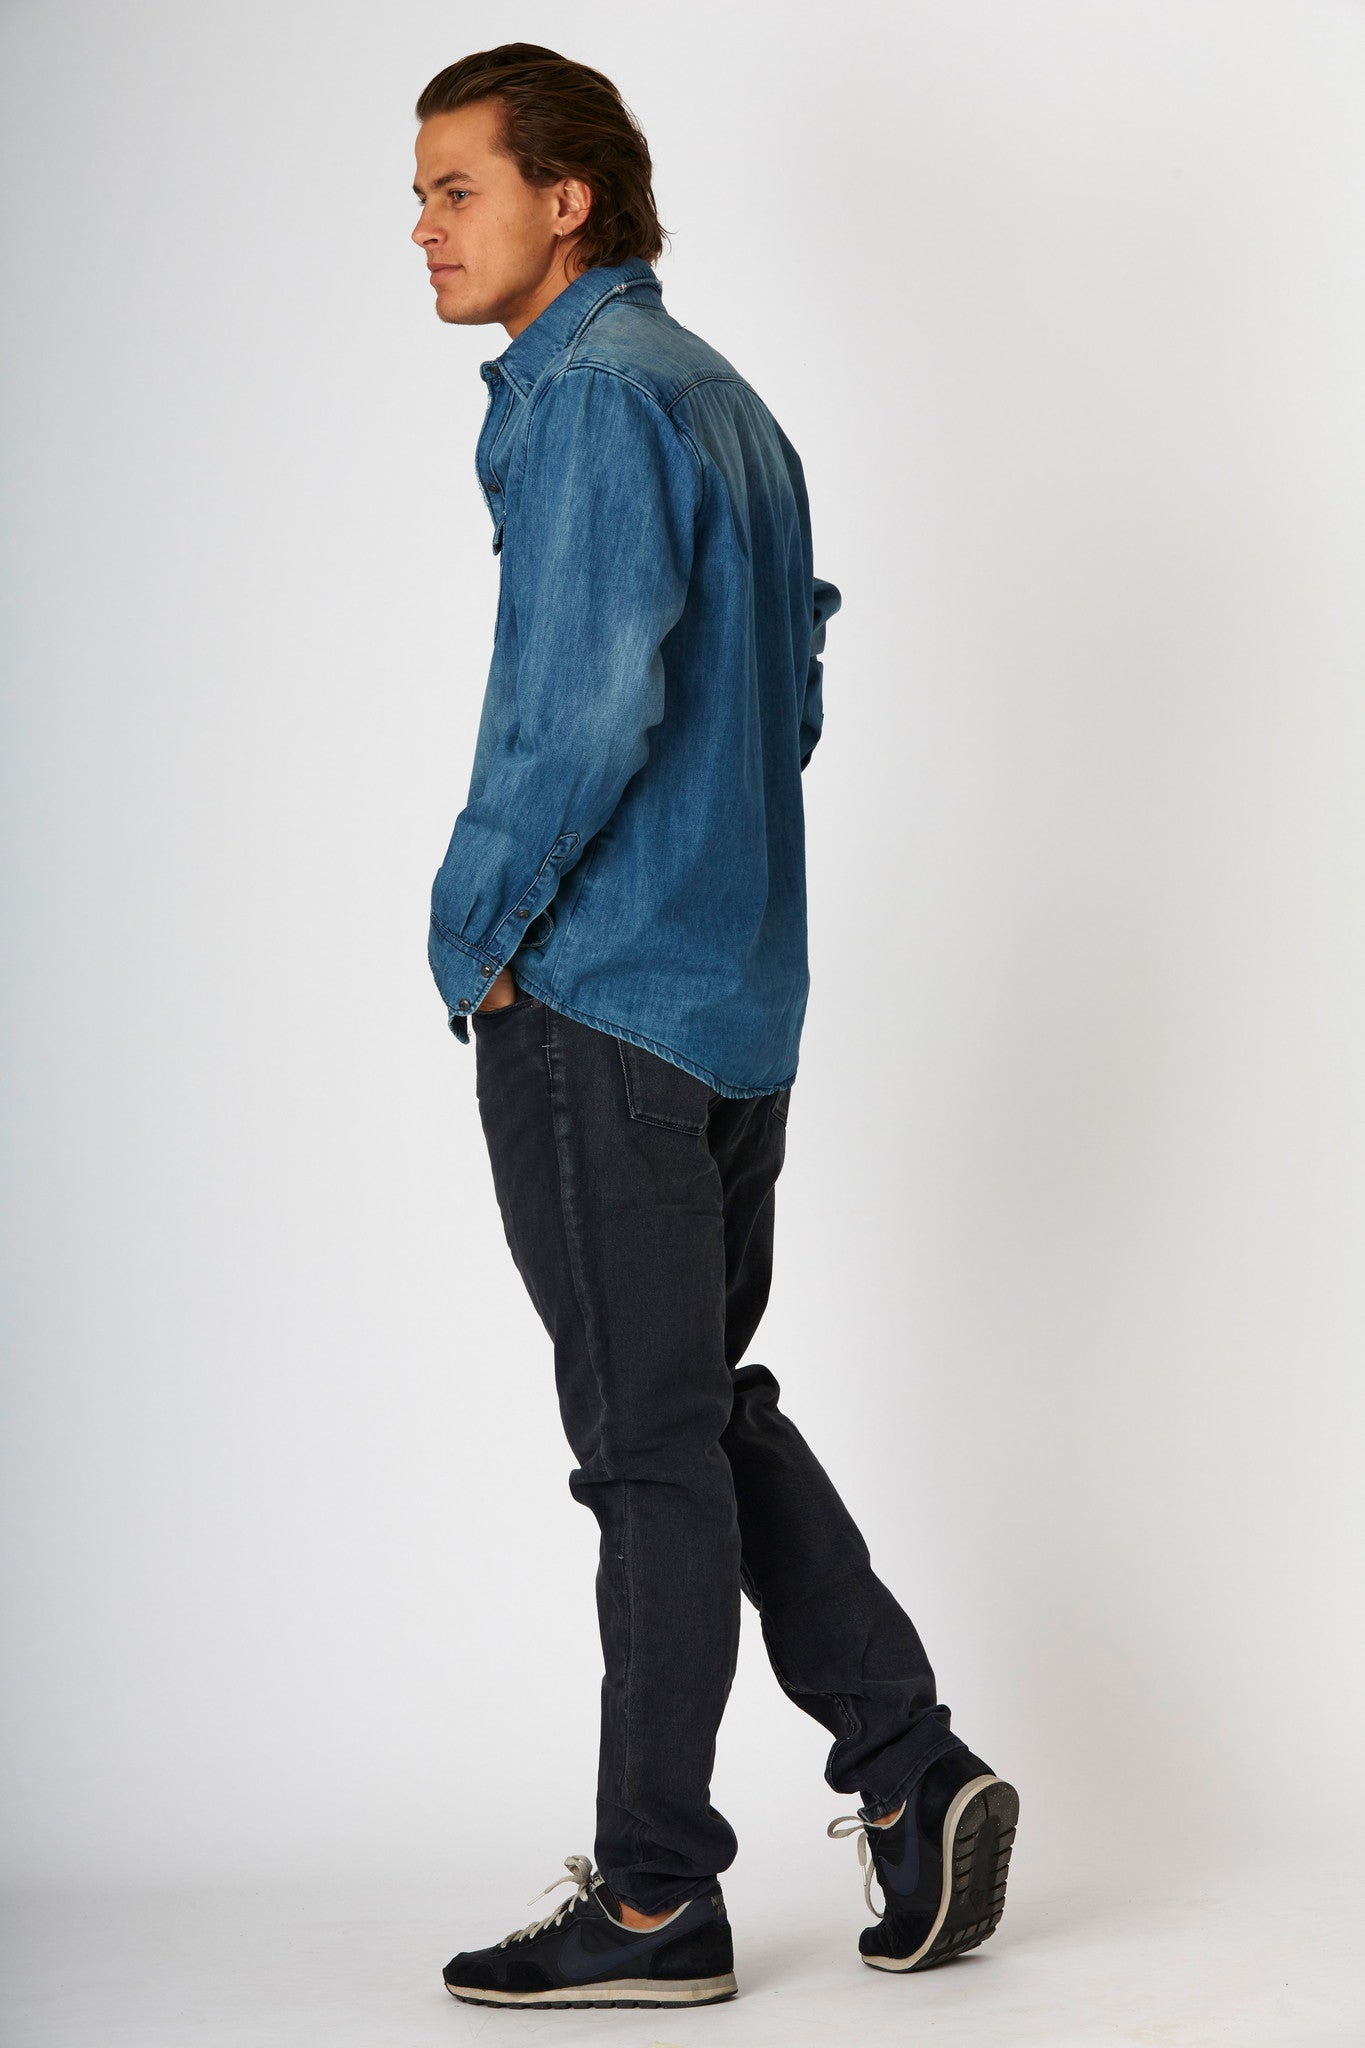 #2F11 Denim Shirt Blue Thames - denimcolab